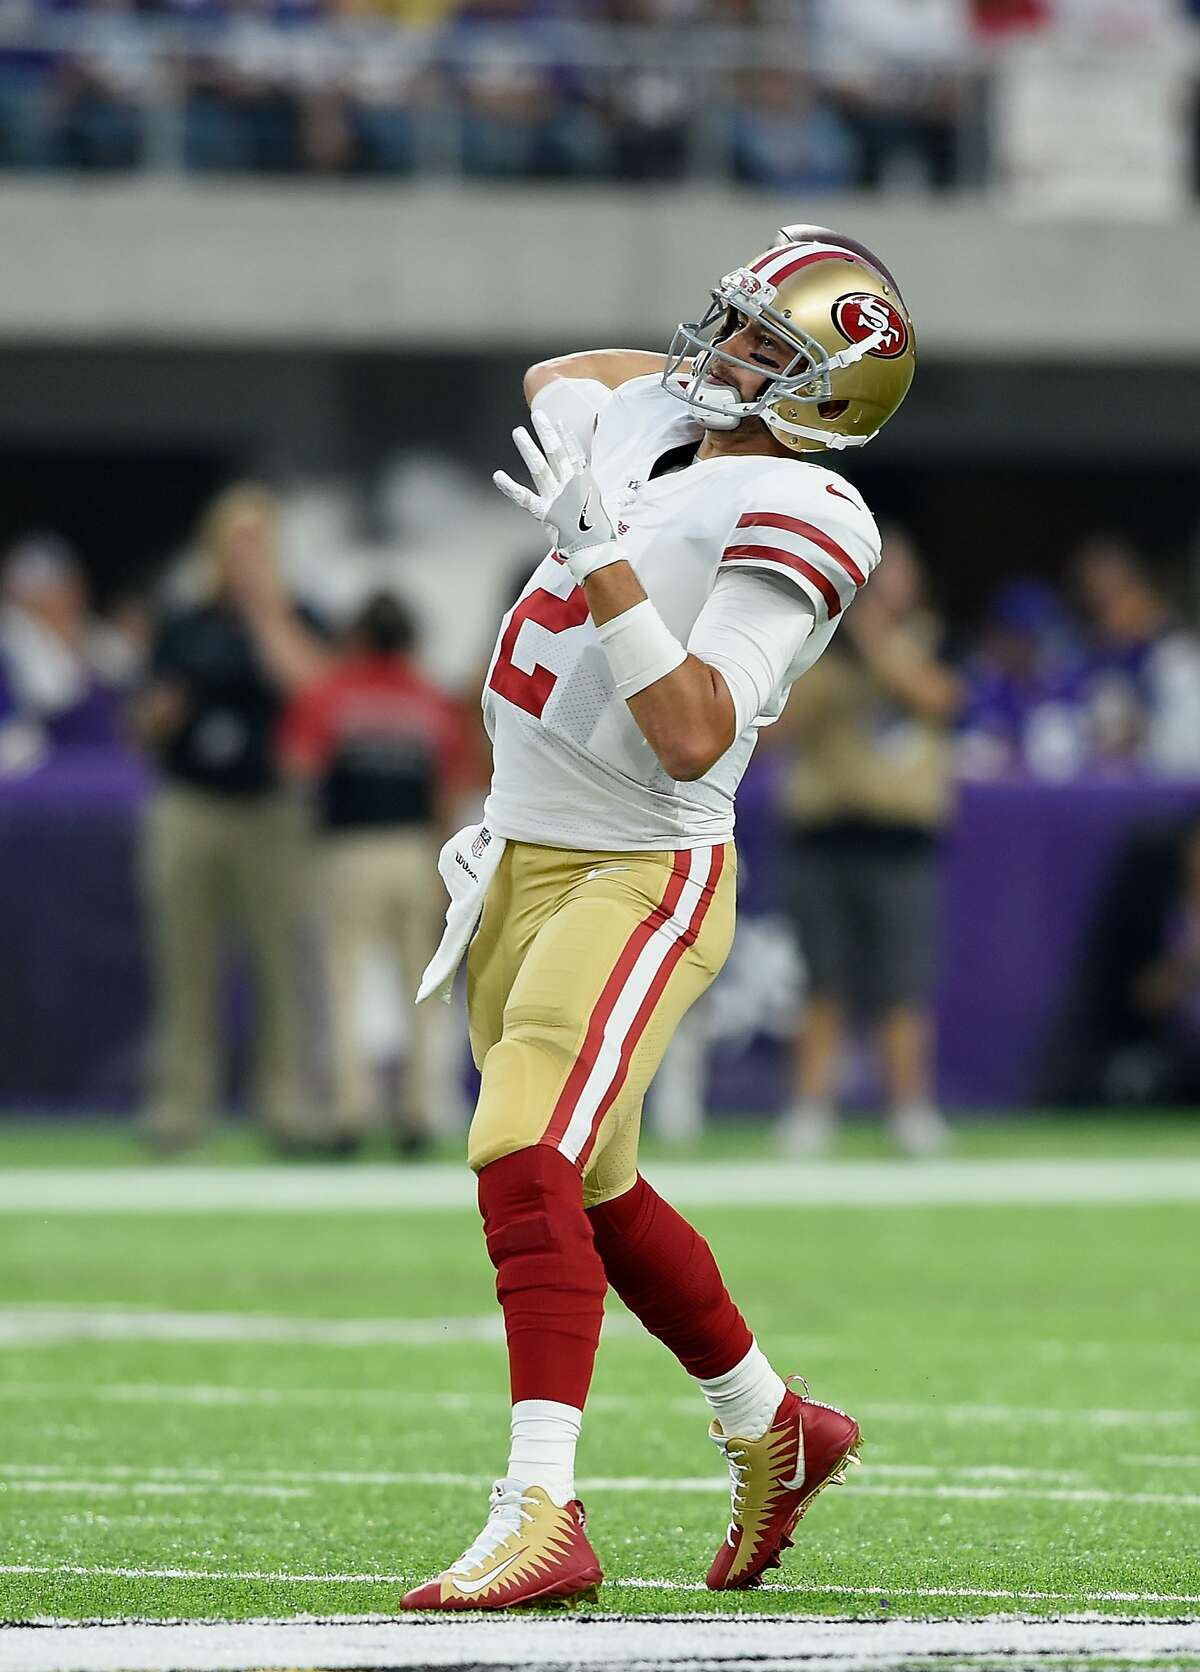 MINNEAPOLIS, MN - AUGUST 27: Brian Hoyer #2 of the San Francisco 49ers passes the ball for a touchdown against the Minnesota Vikings during the first quarter in the preseason game on August 27, 2017 at U.S. Bank Stadium in Minneapolis, Minnesota. (Photo by Hannah Foslien/Getty Images)